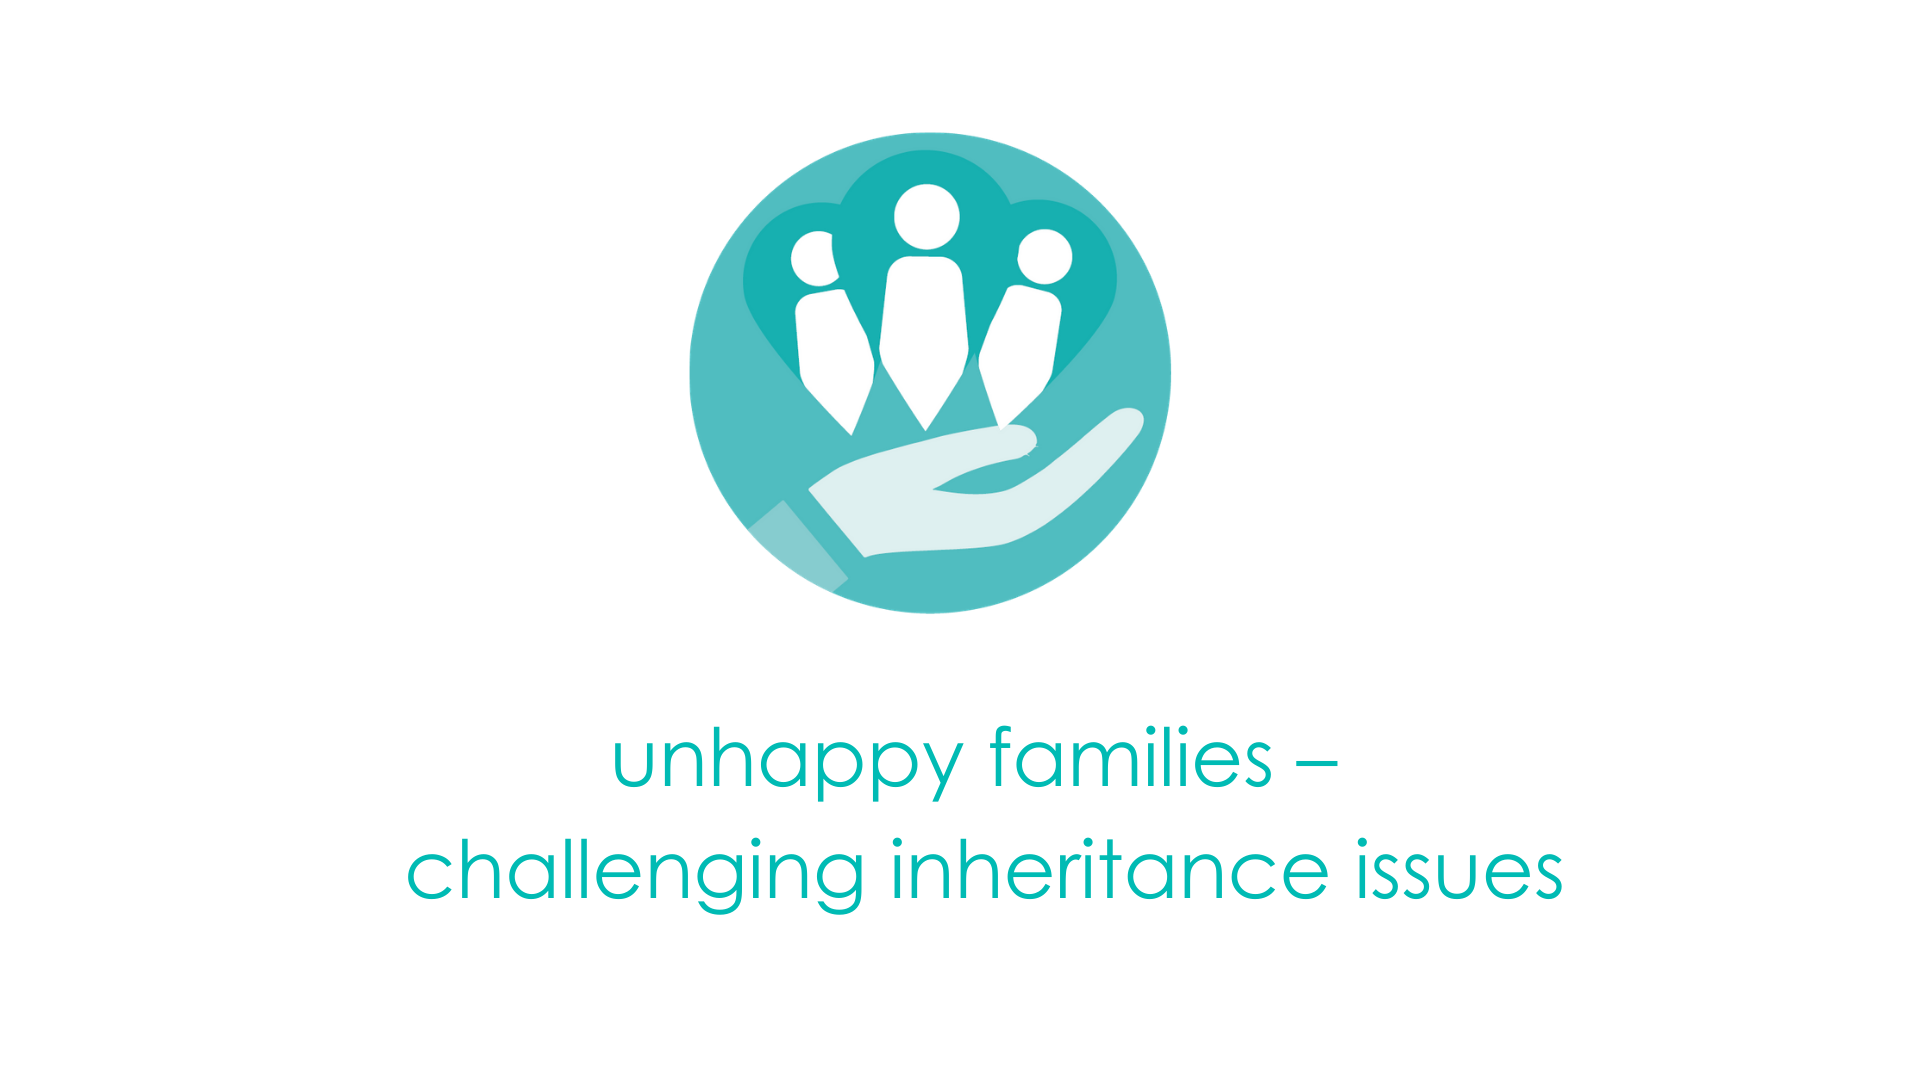 Unhappy families – challenging inheritance issues